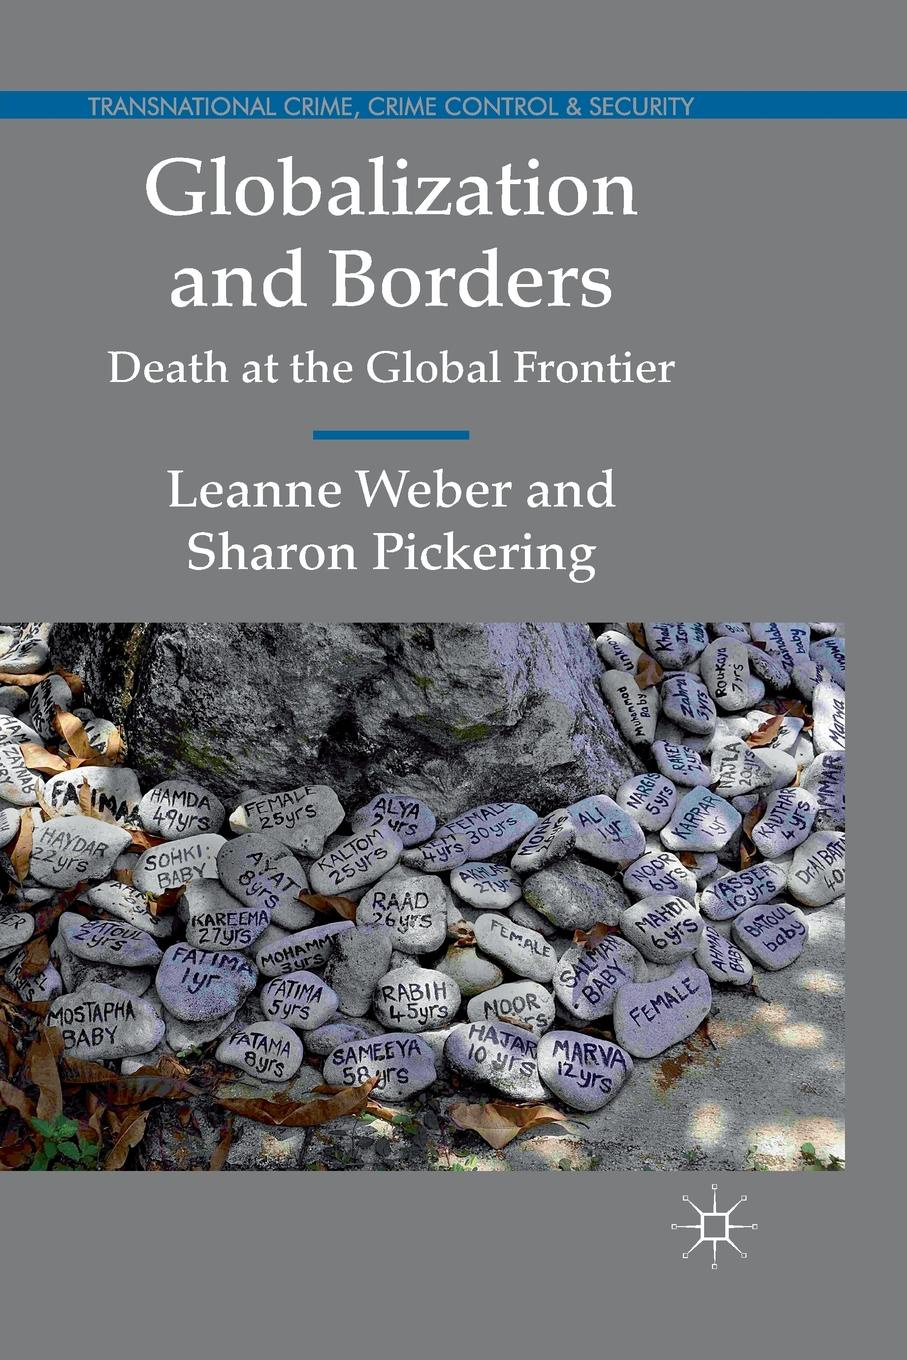 L. Weber, S. Pickering Globalization and Borders. Death at the Global Frontier